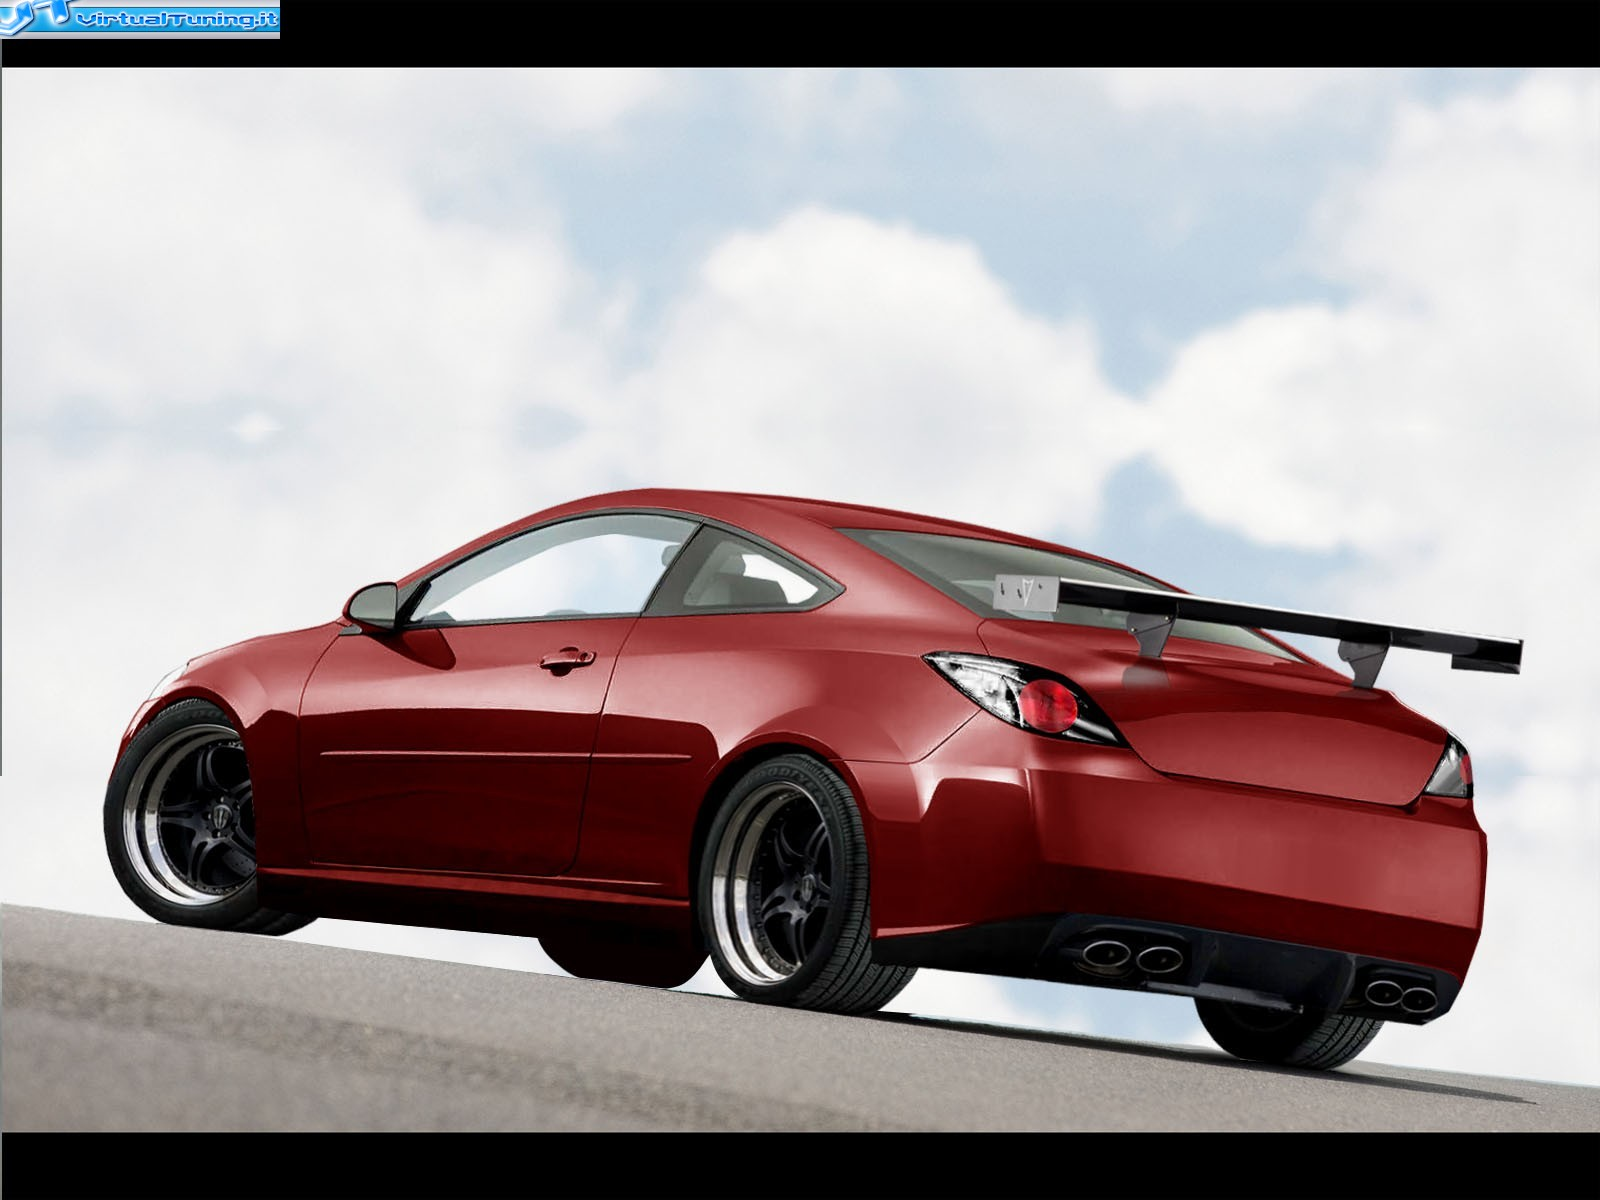 pontiac g6 gtp coupe by tmotd virtualtuning it. Black Bedroom Furniture Sets. Home Design Ideas